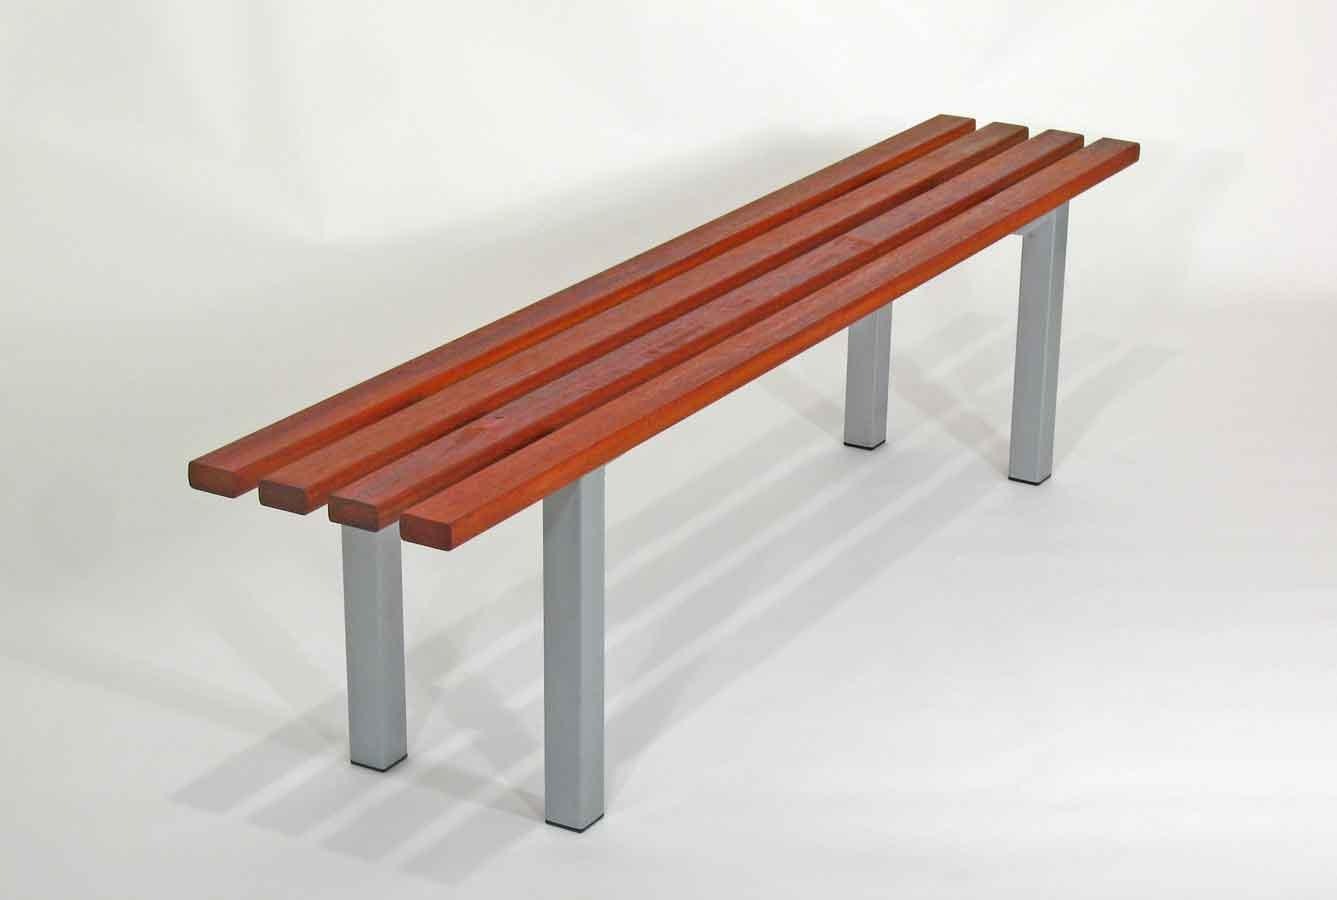 S050 Bench Seating Freestanding Furniture For Public